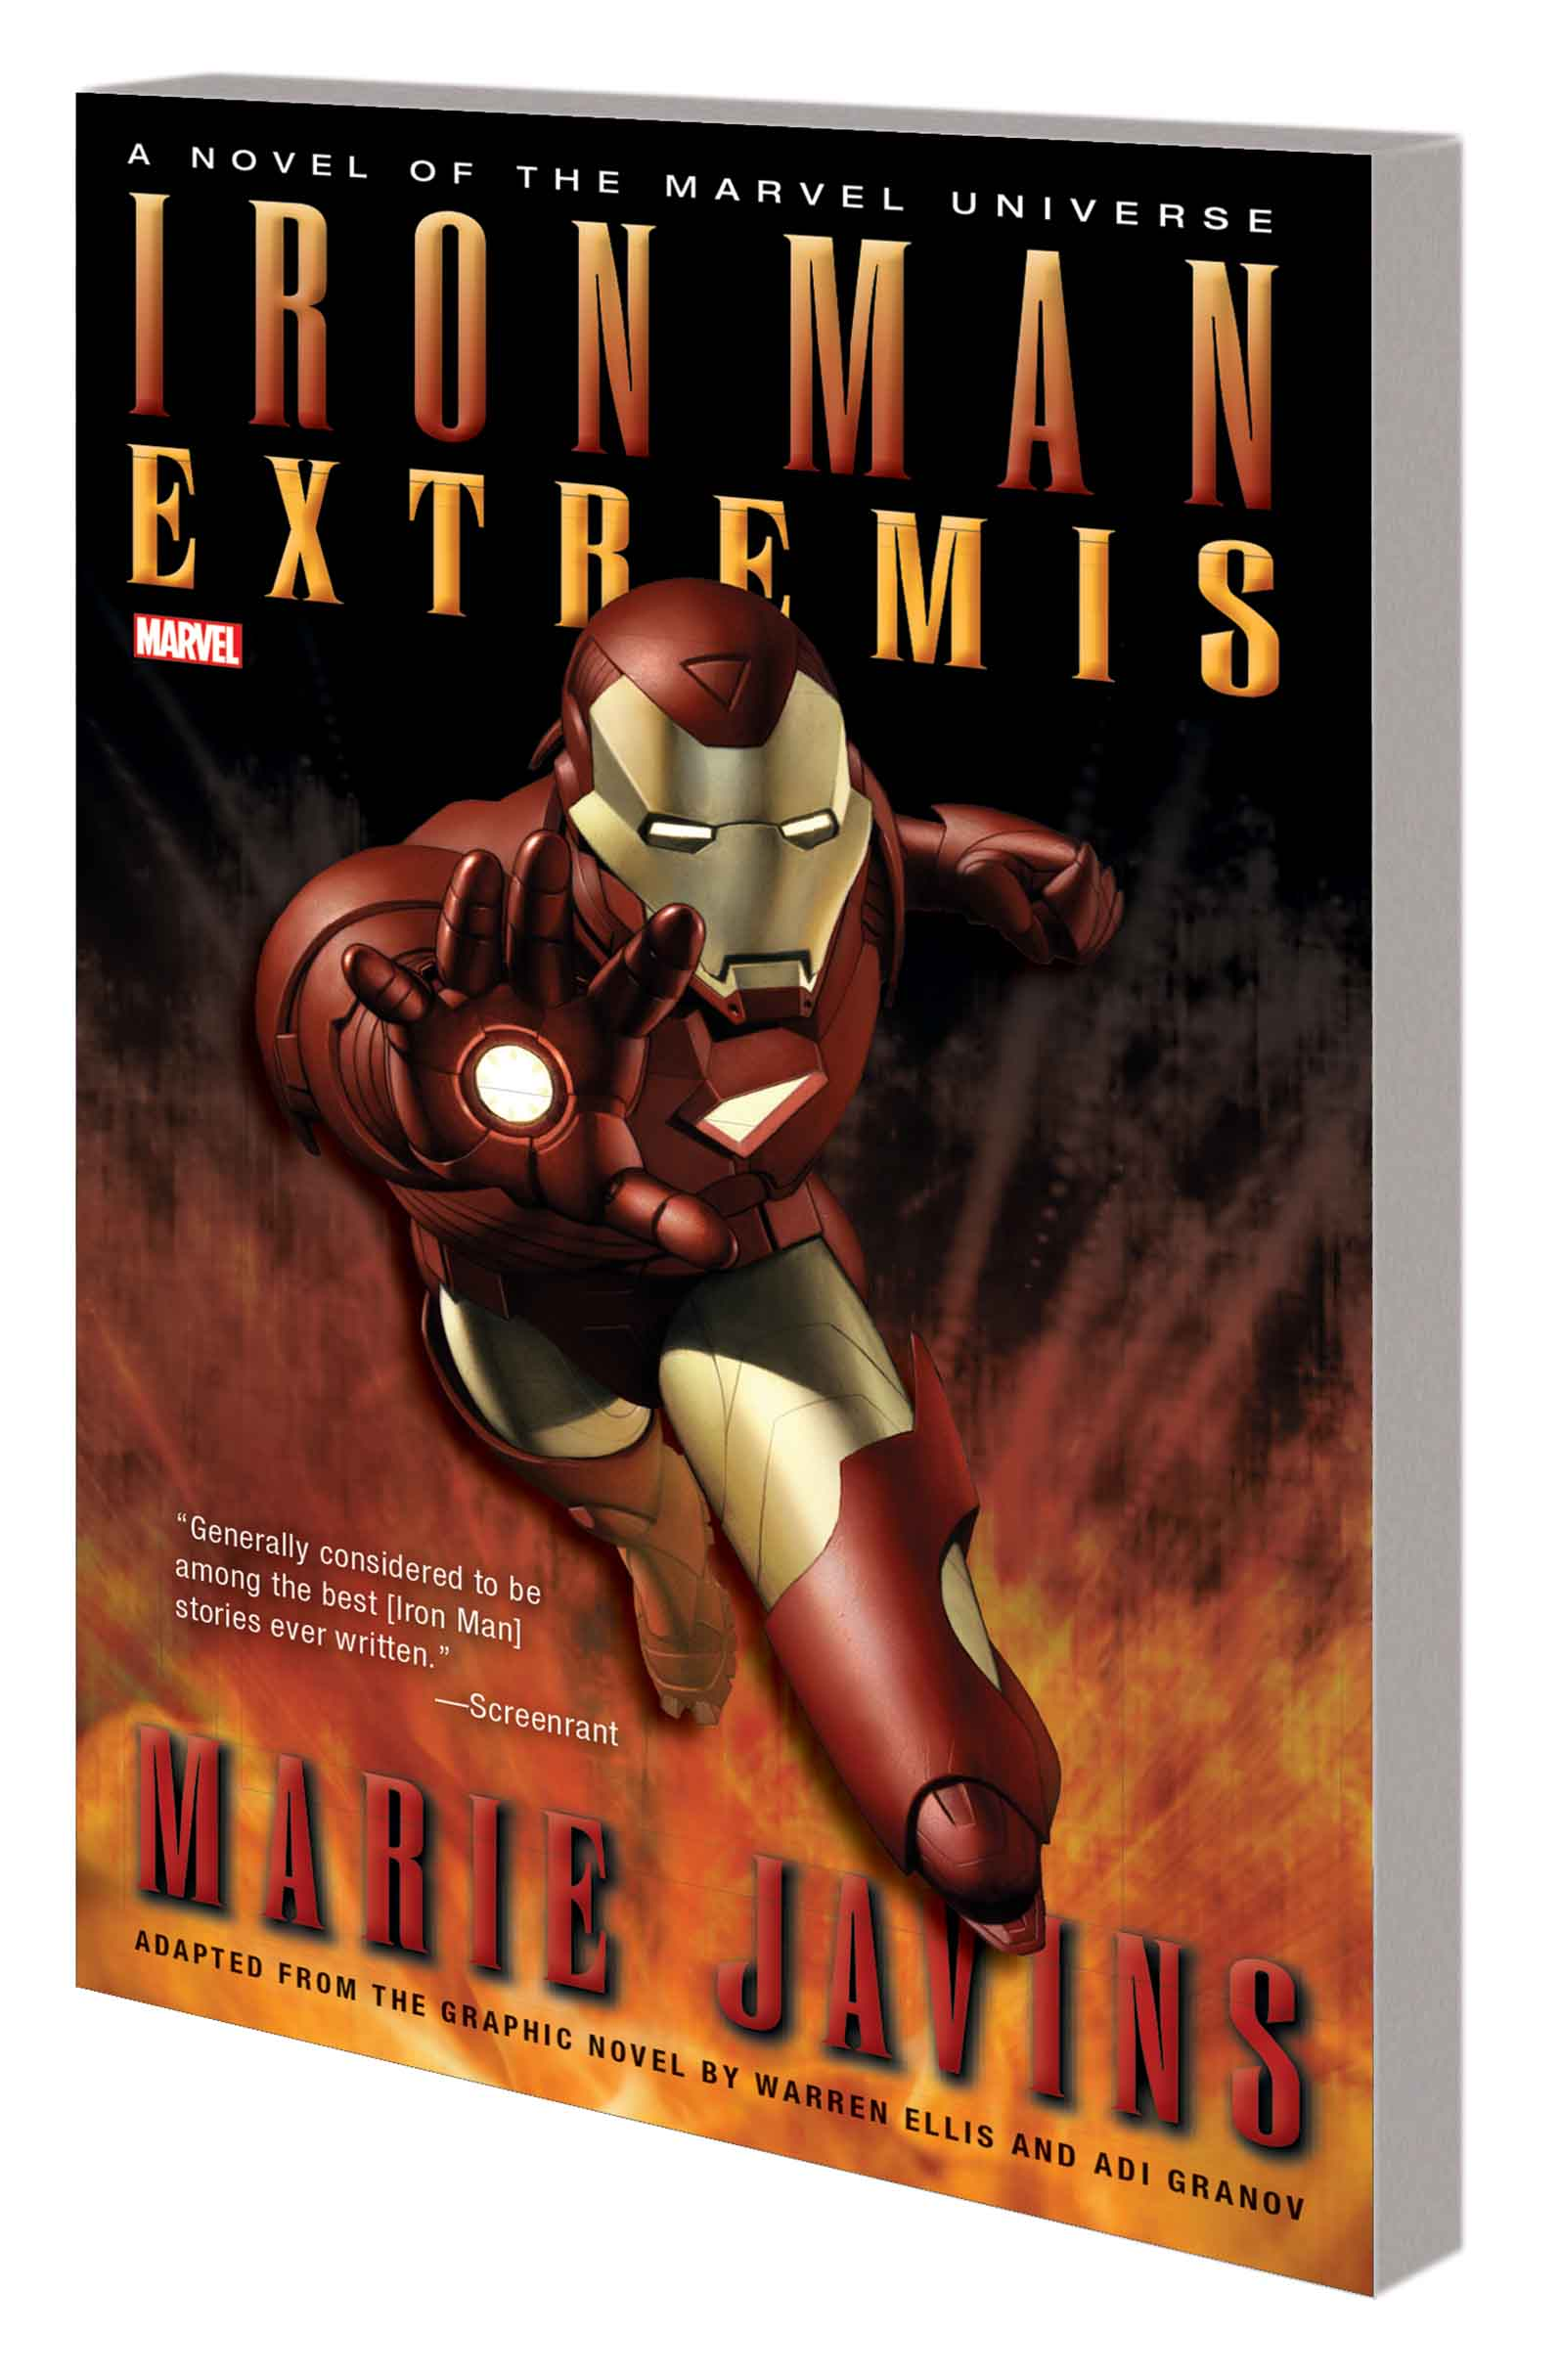 IRON MAN: EXTREMIS PROSE NOVEL MASS MARKET PAPERBACK (Trade Paperback)